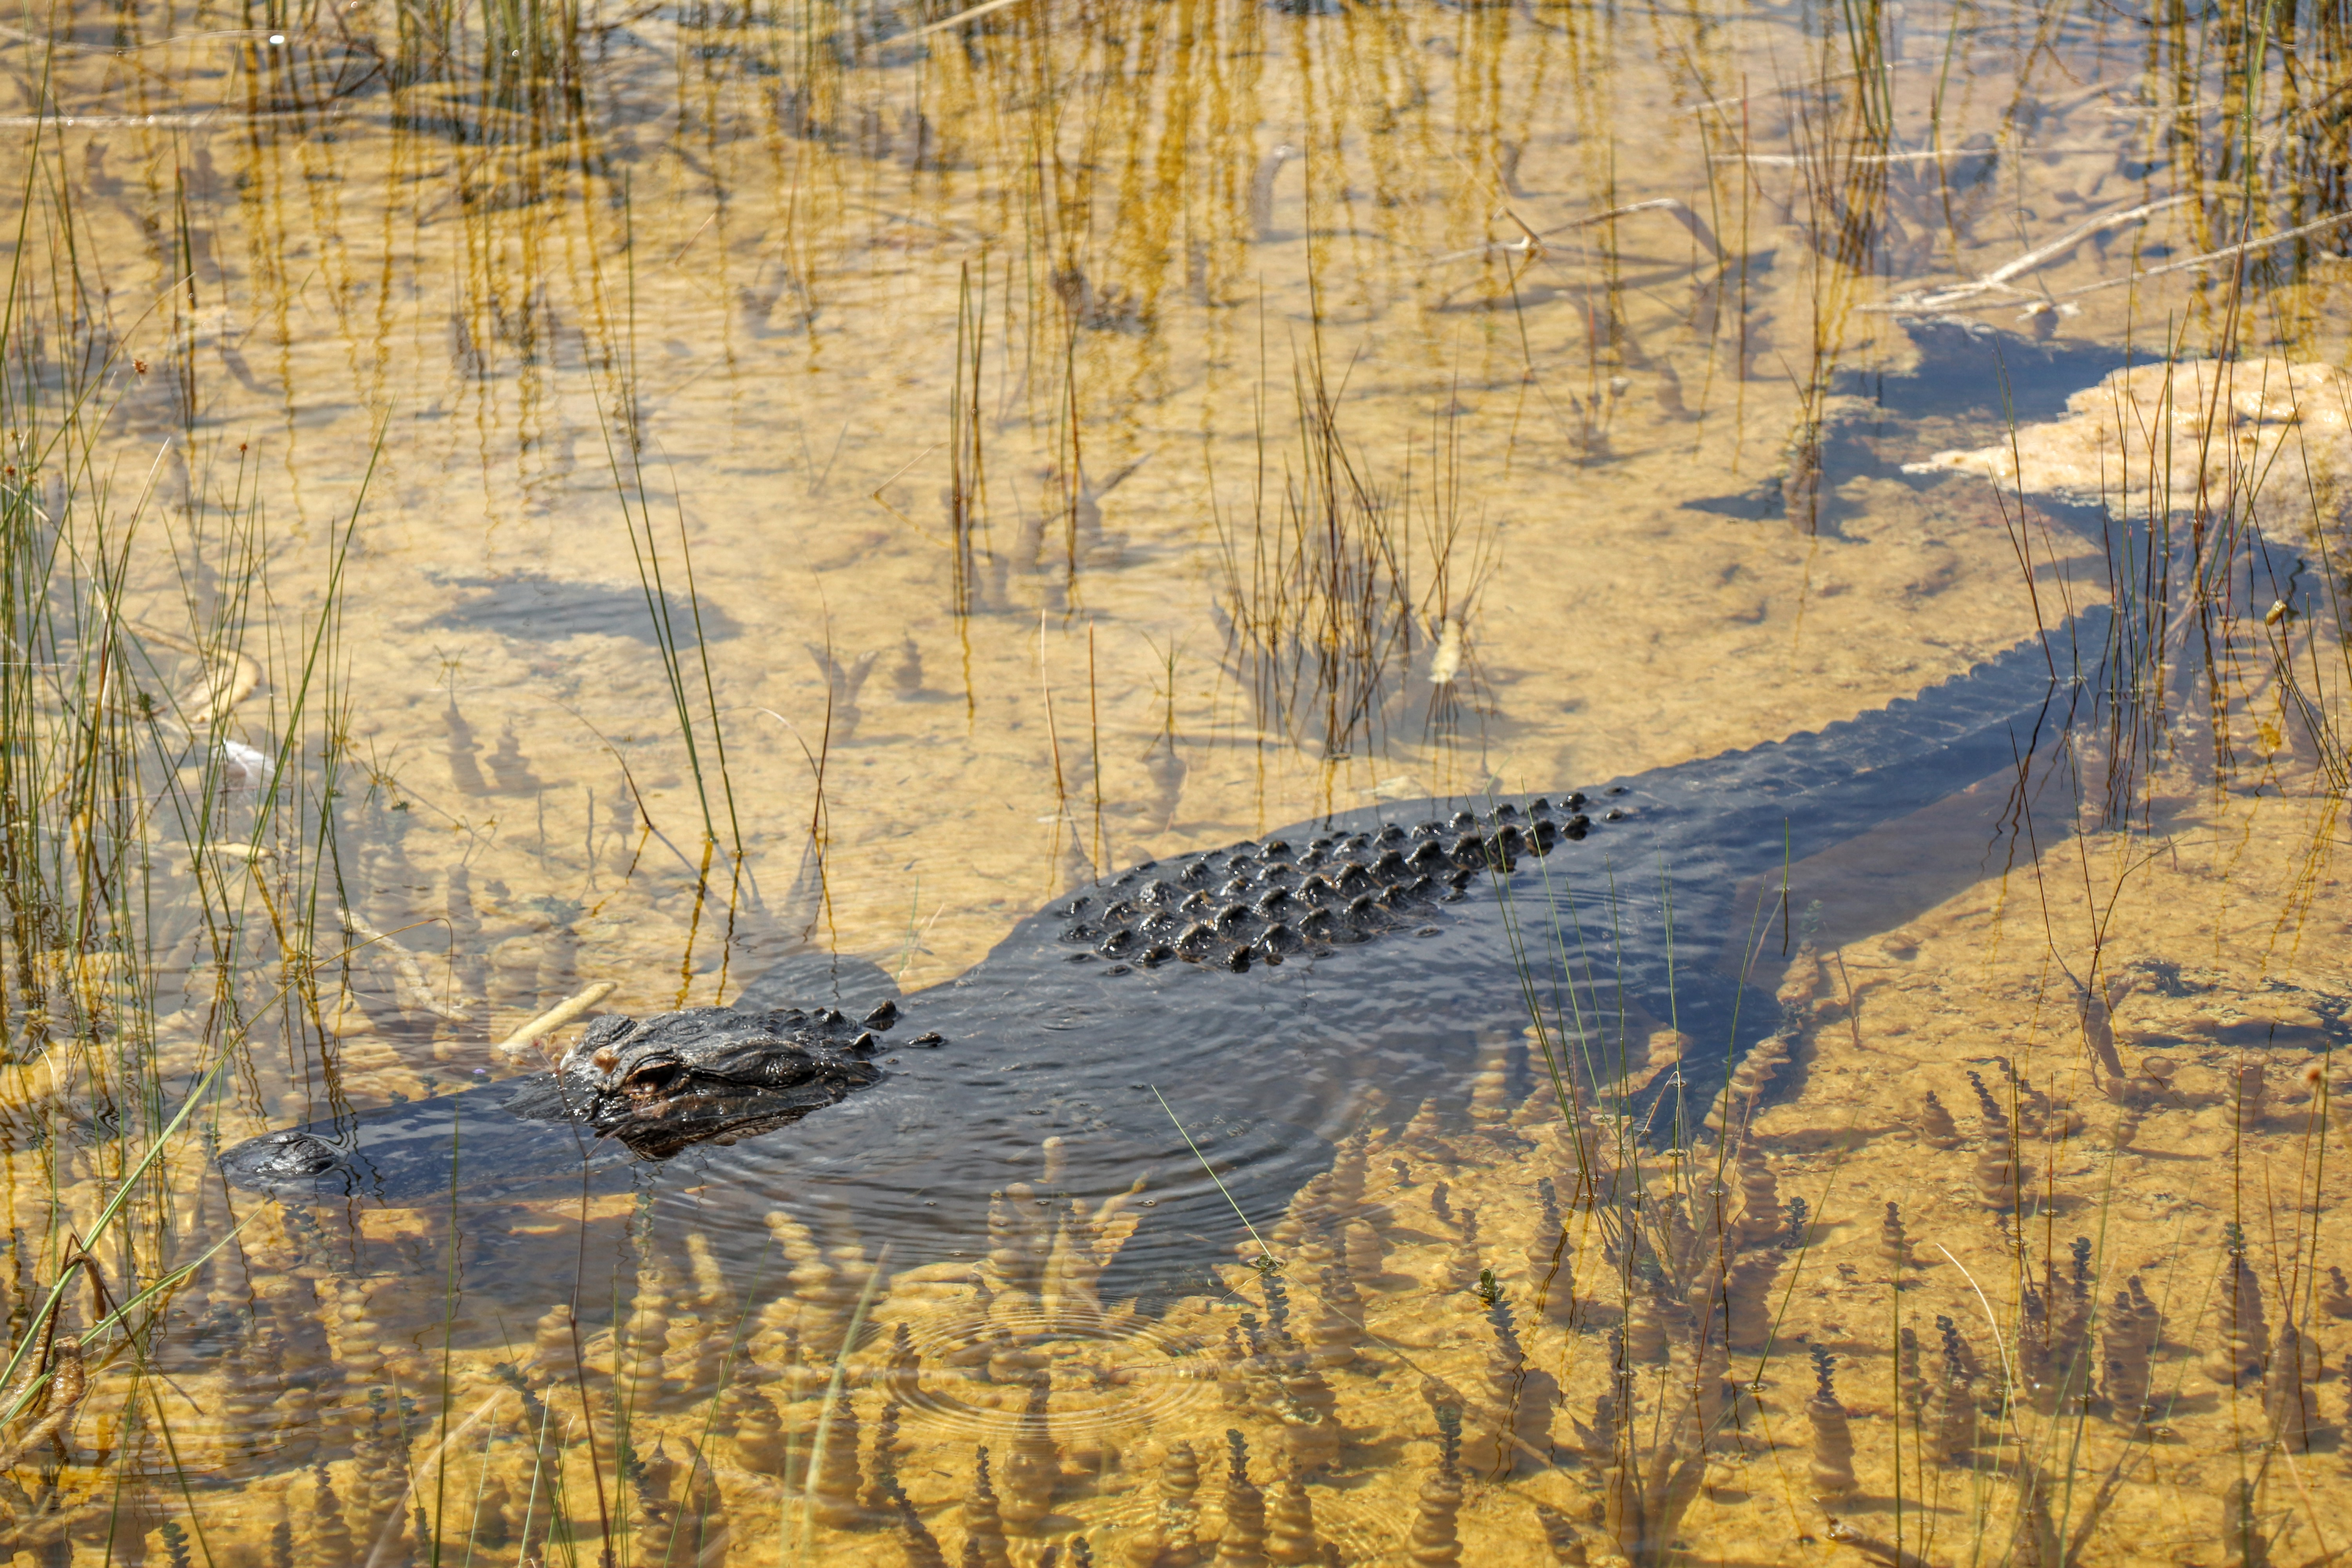 American Alligator in shallow water - Shark Valley Everglades National Park